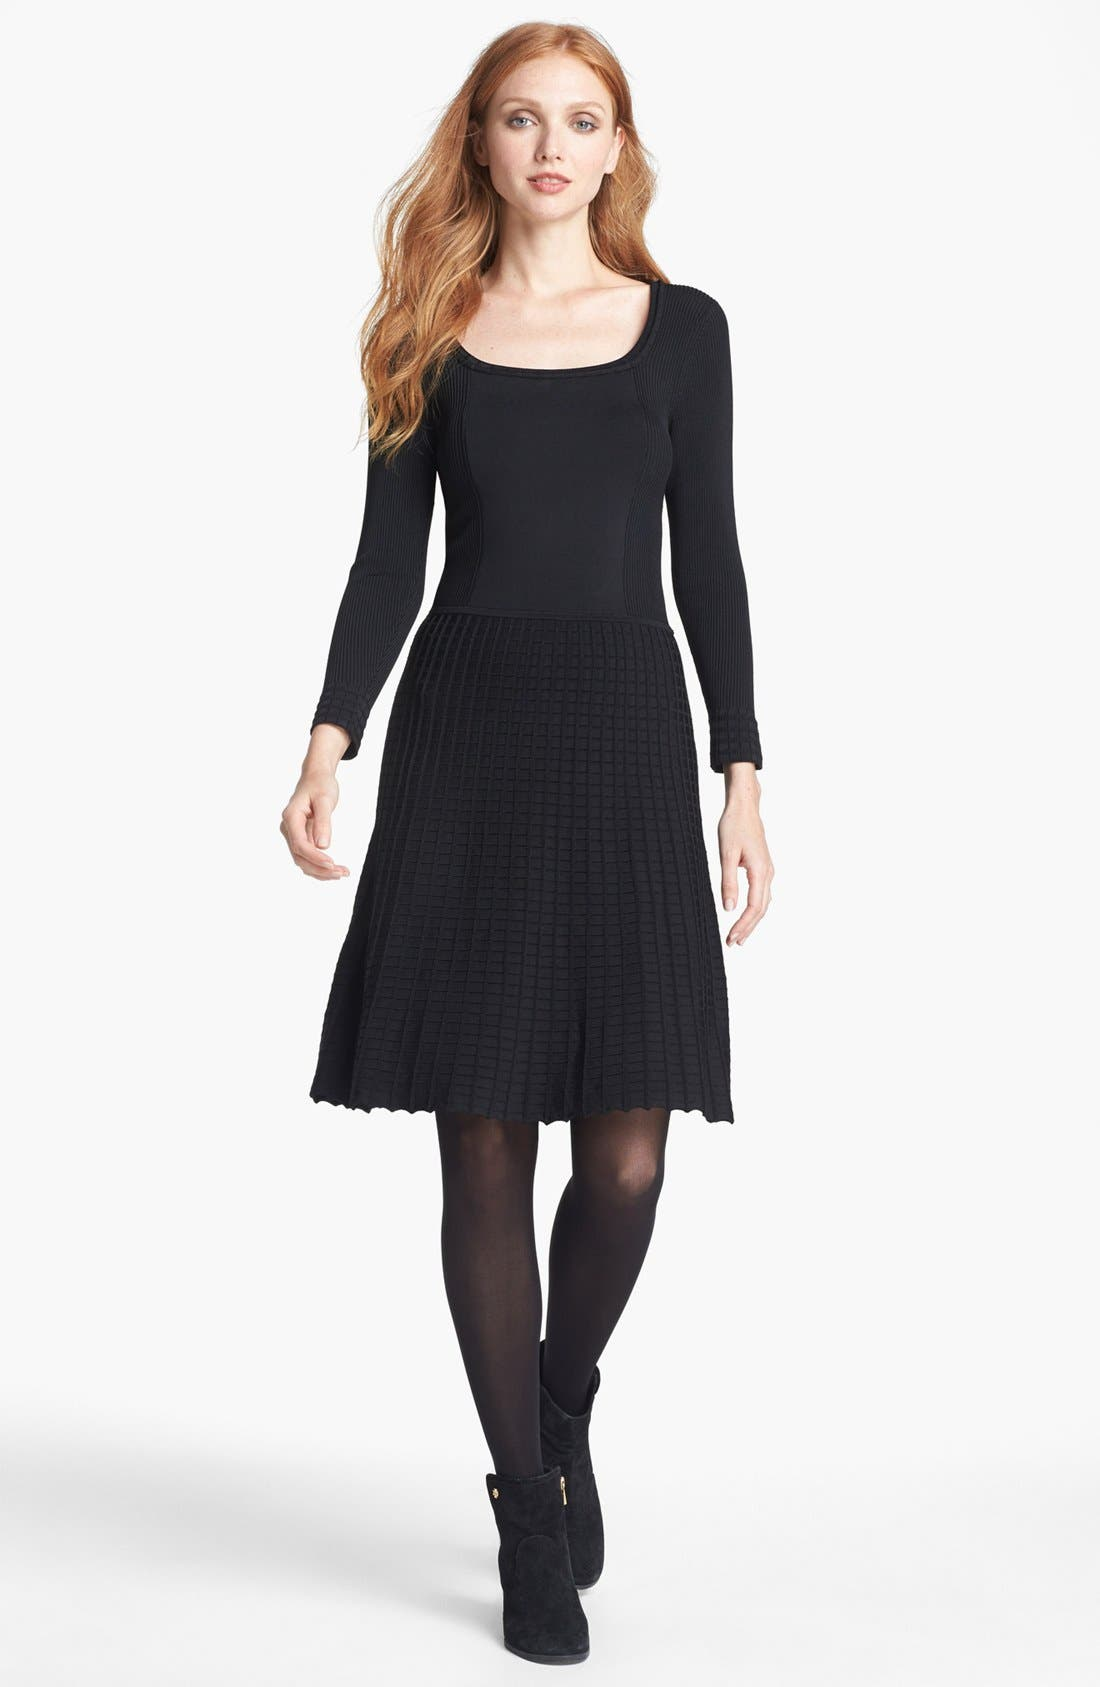 Alternate Image 1 Selected - Tory Burch 'Thea' Stretch A-Line Dress